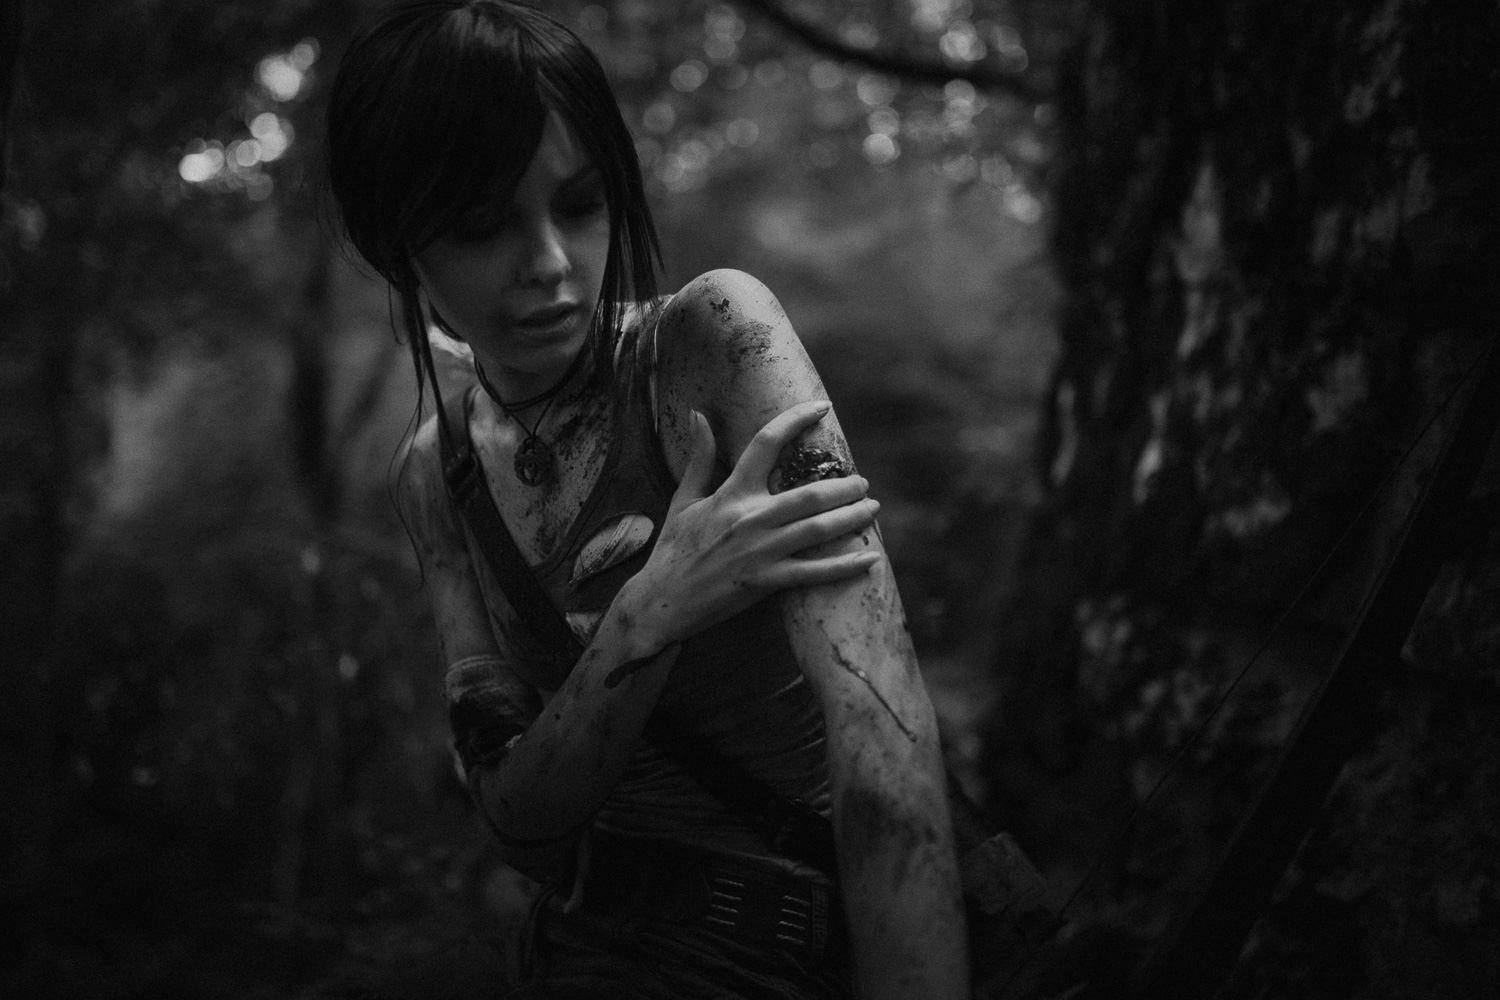 Tomb-Raider-Lara-Croft-Cosplay-5.jpg